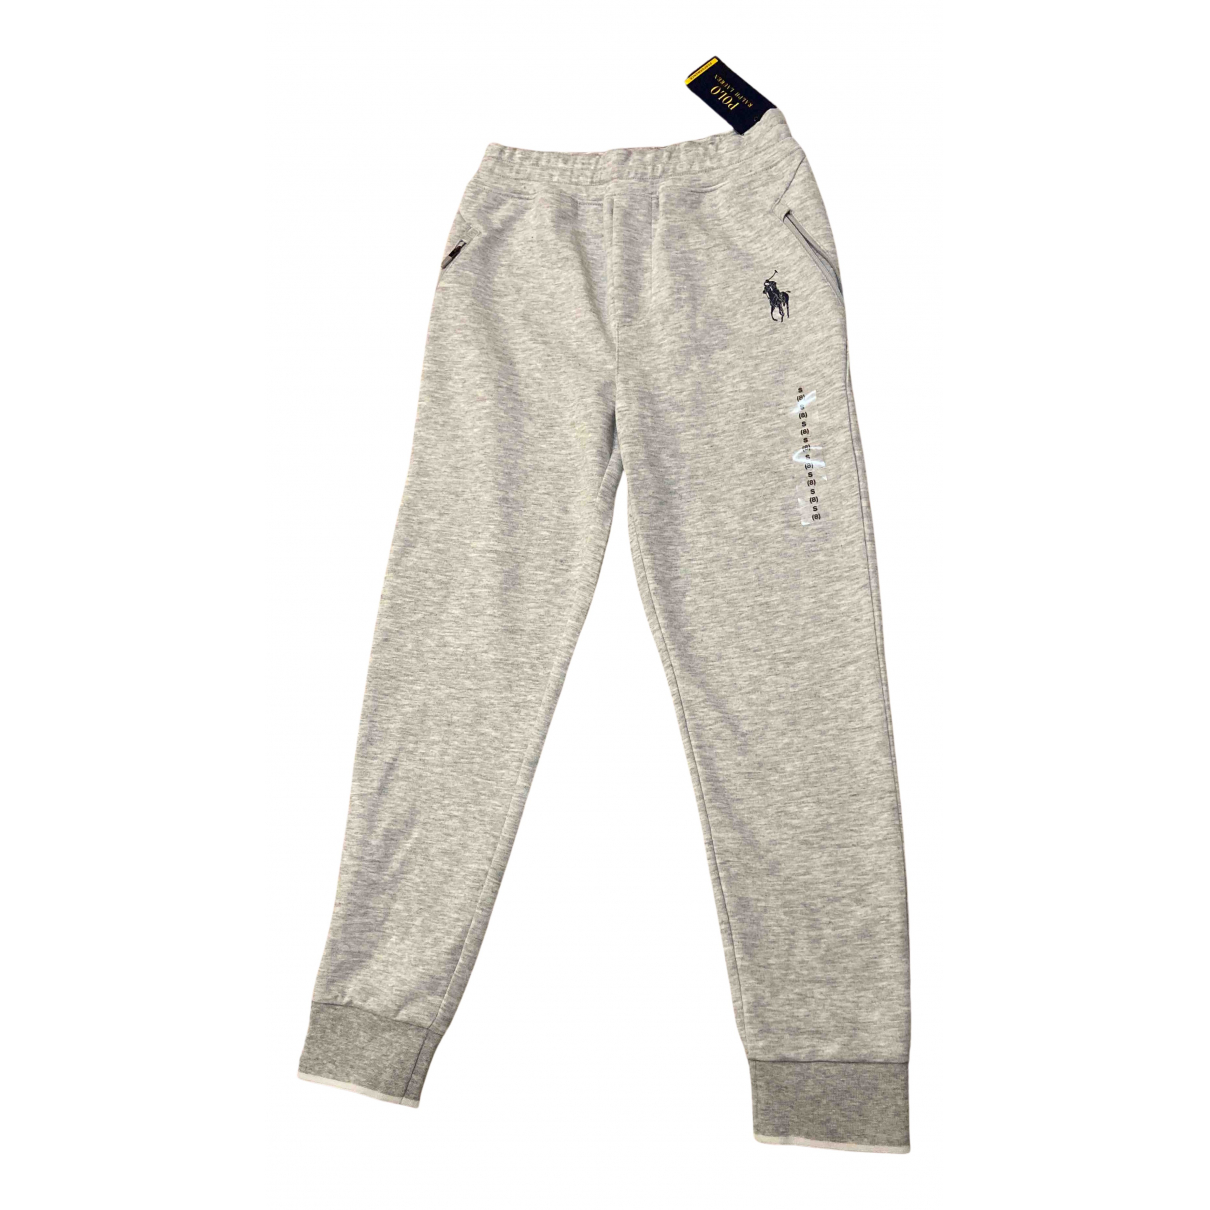 Polo Ralph Lauren N Grey Trousers for Kids 8 years - up to 128cm FR